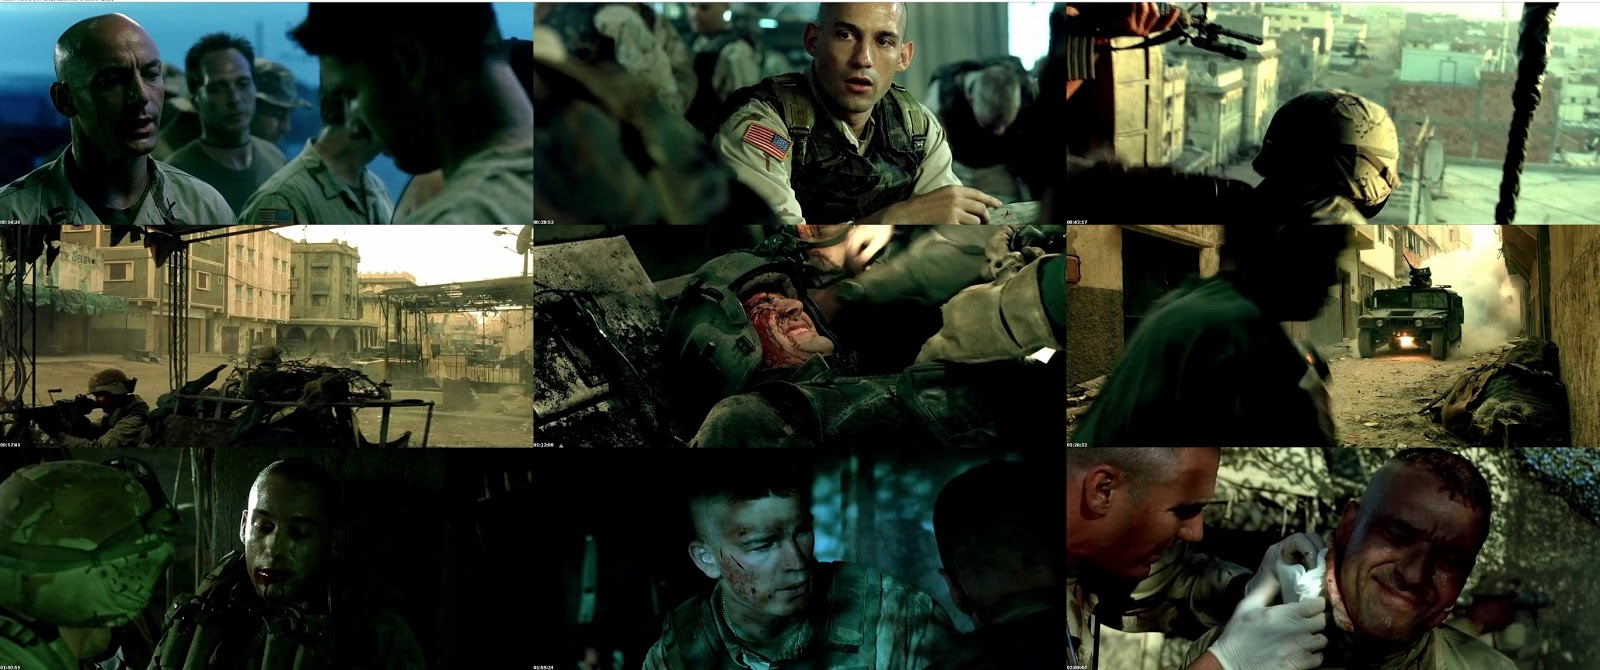 Black+Hawk+Down+(2001)+BluRay+720p+BRRip+950MB+Hnmovies